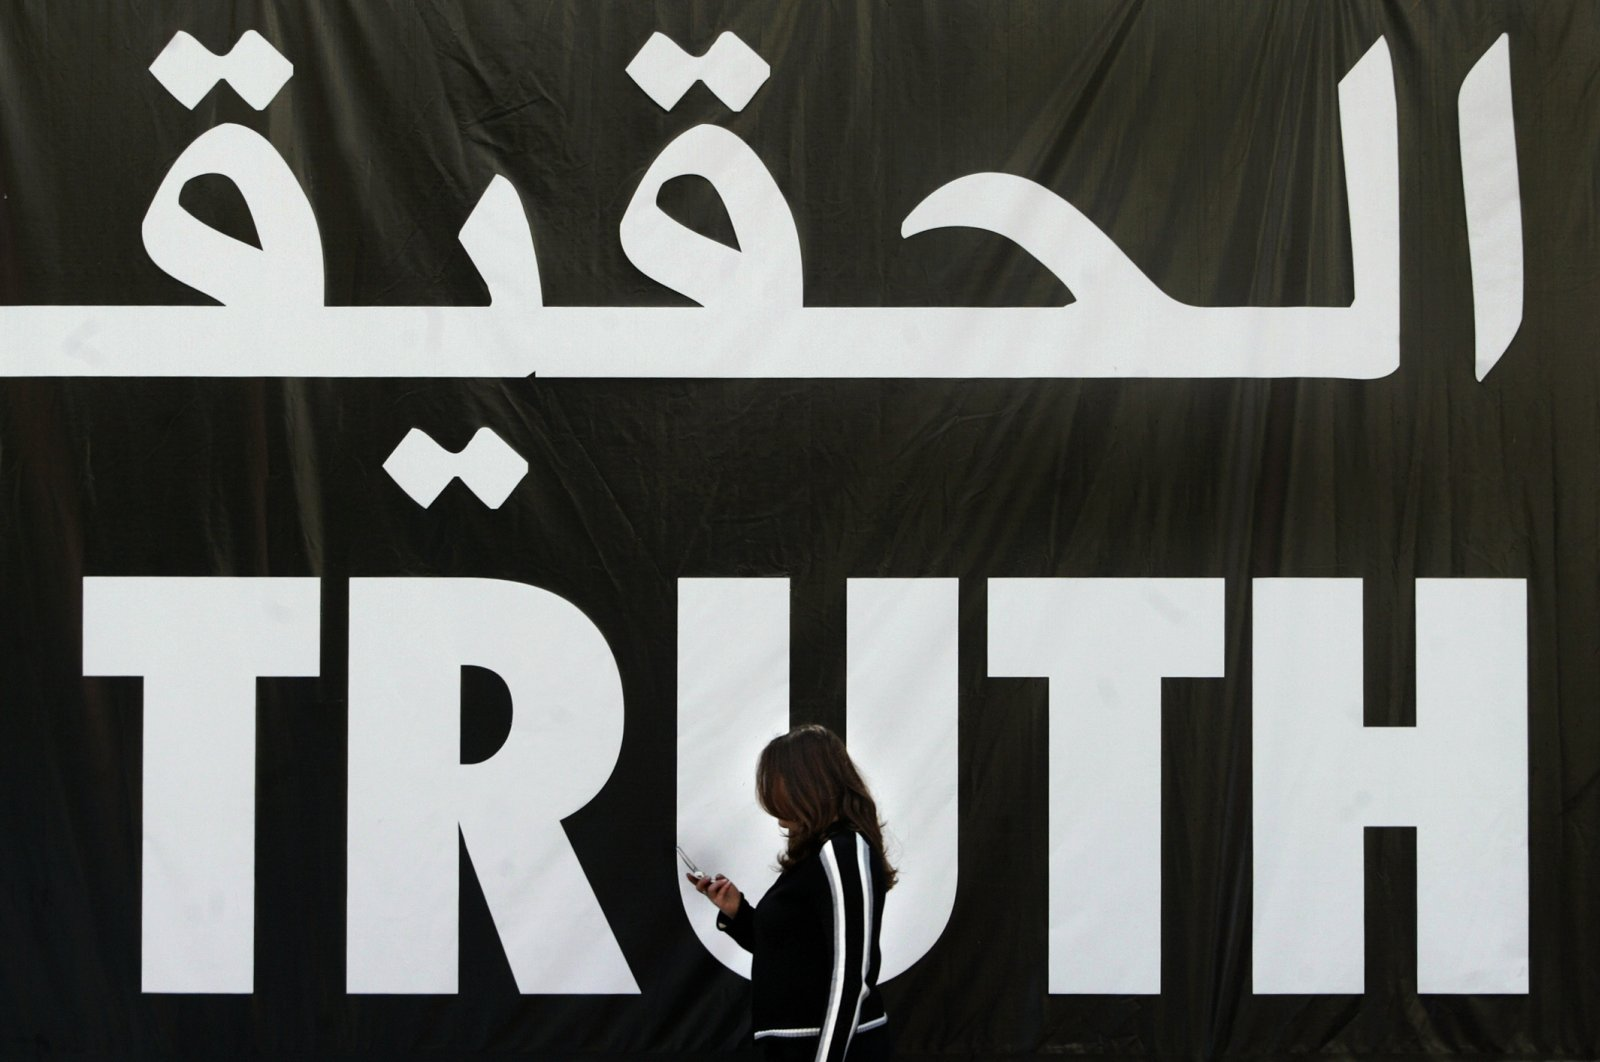 """A Lebanese woman uses her mobile phone as she walks past a giant banner reading """"truth"""" in Arabic and English, Beirut, Apr. 5, 2005. (AFP Photo)"""